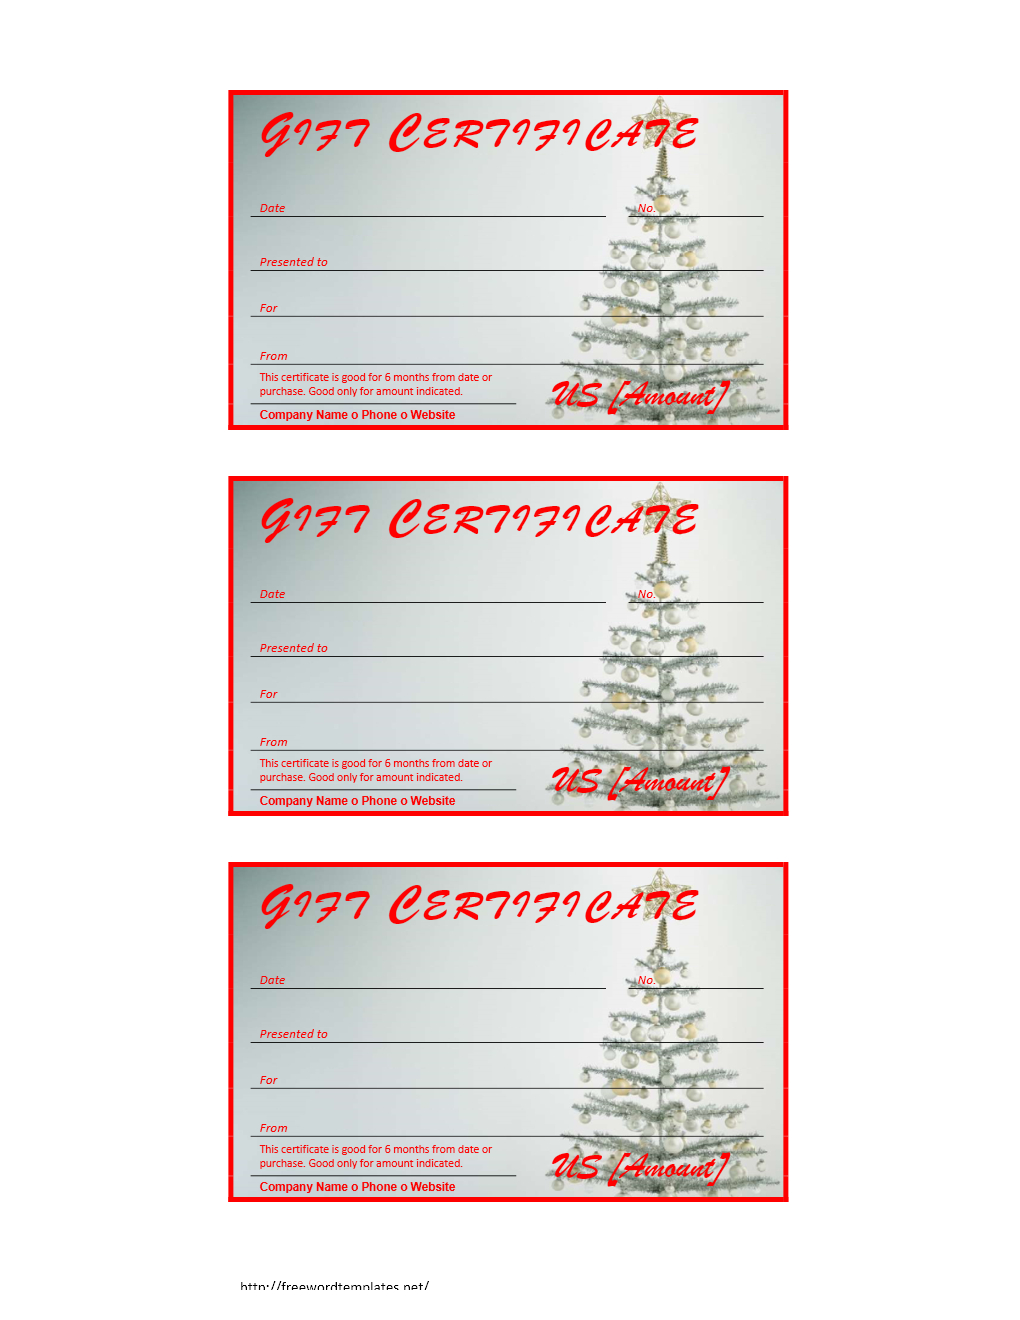 Free Gift Certificate Archives | Freewordtemplates - Free Printable Xmas Gift Certificates